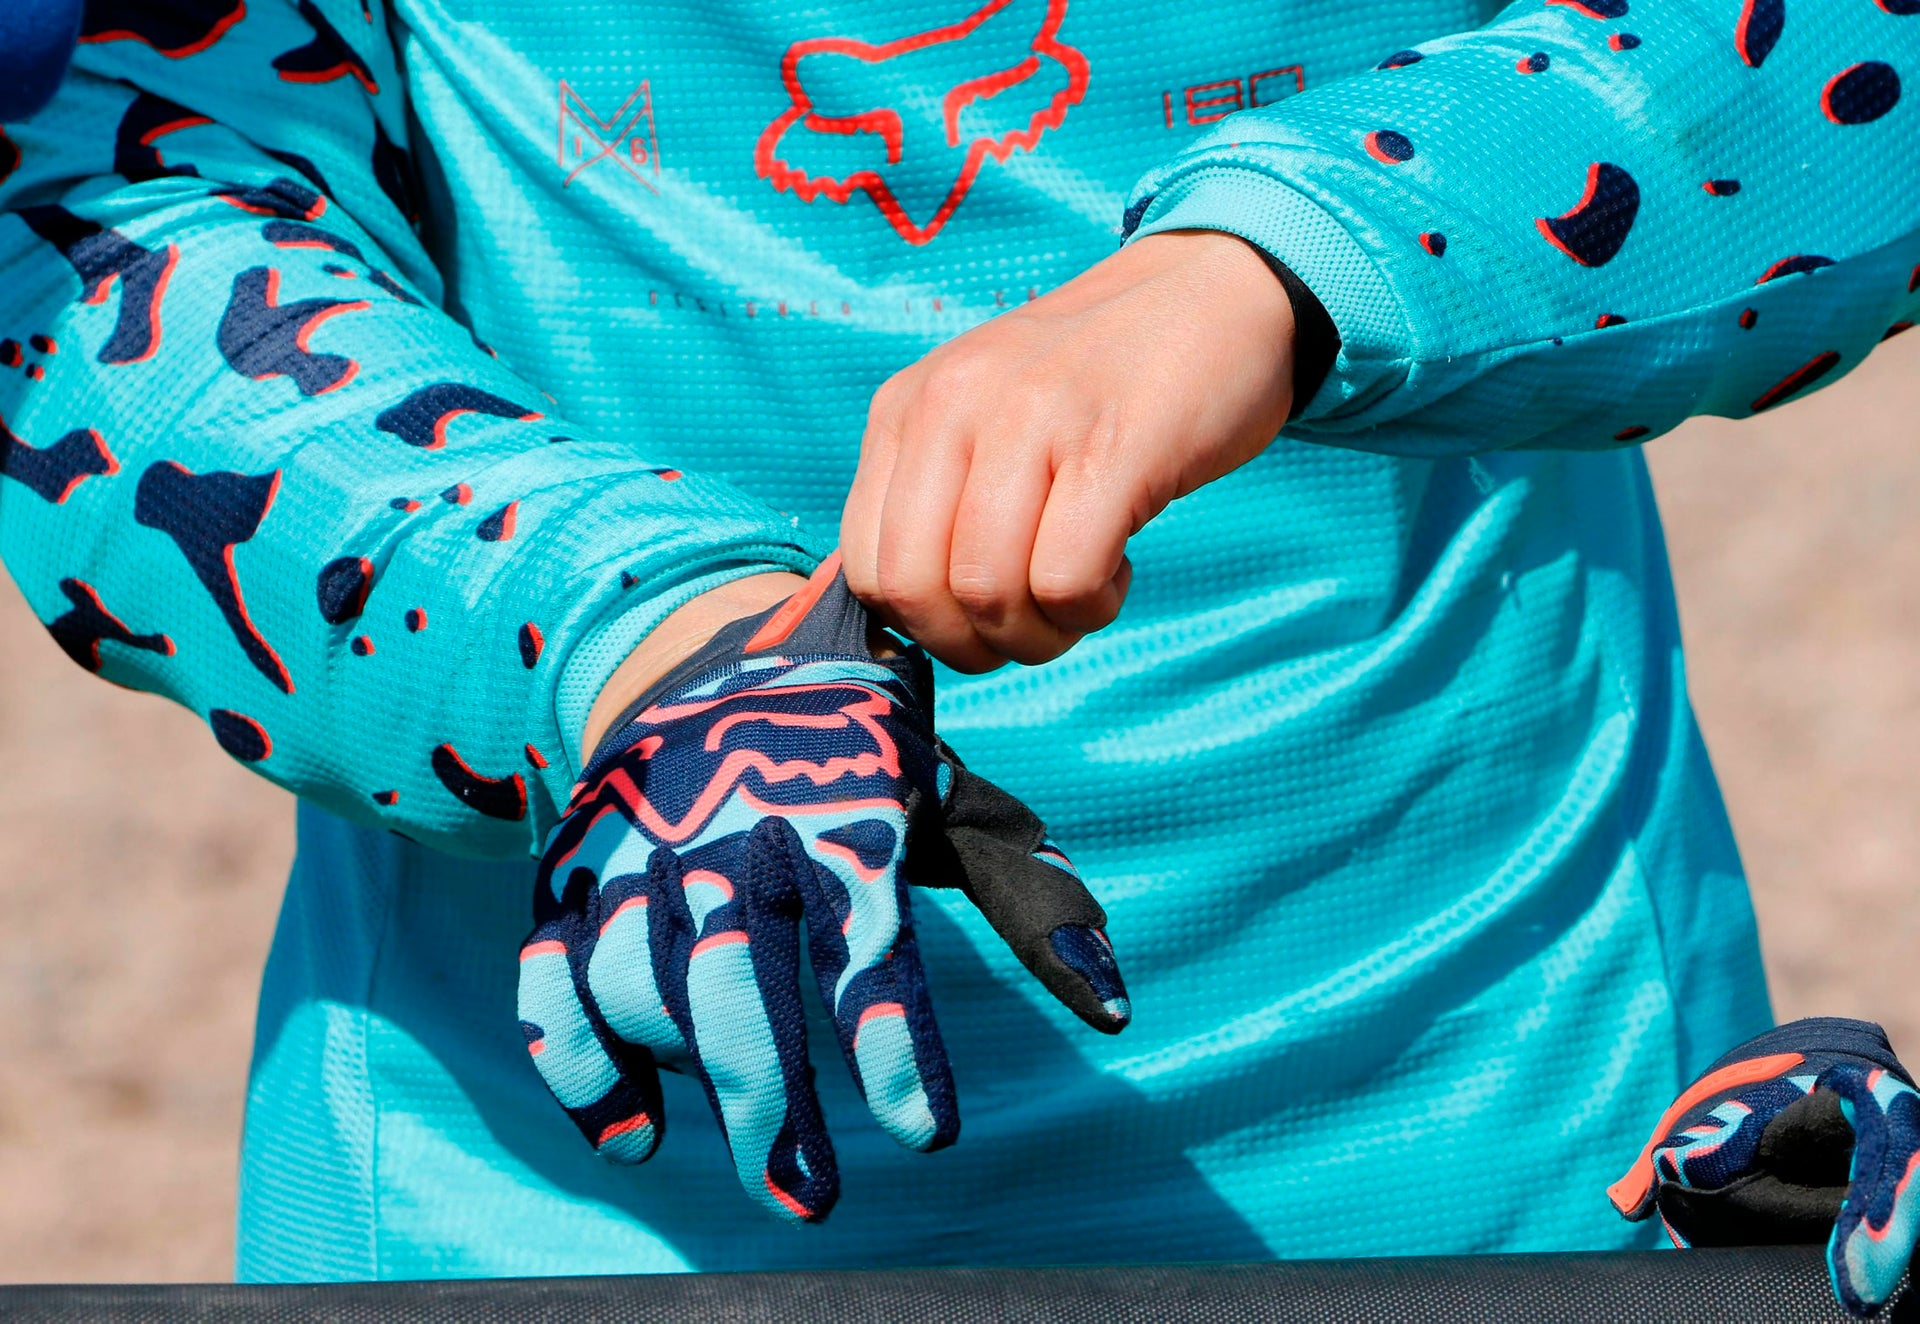 Iranian motorbike champion Behnaz Shafiei adjusts her gloves during a training session in Parand, southwest of Tehran, on February 27, 2017.